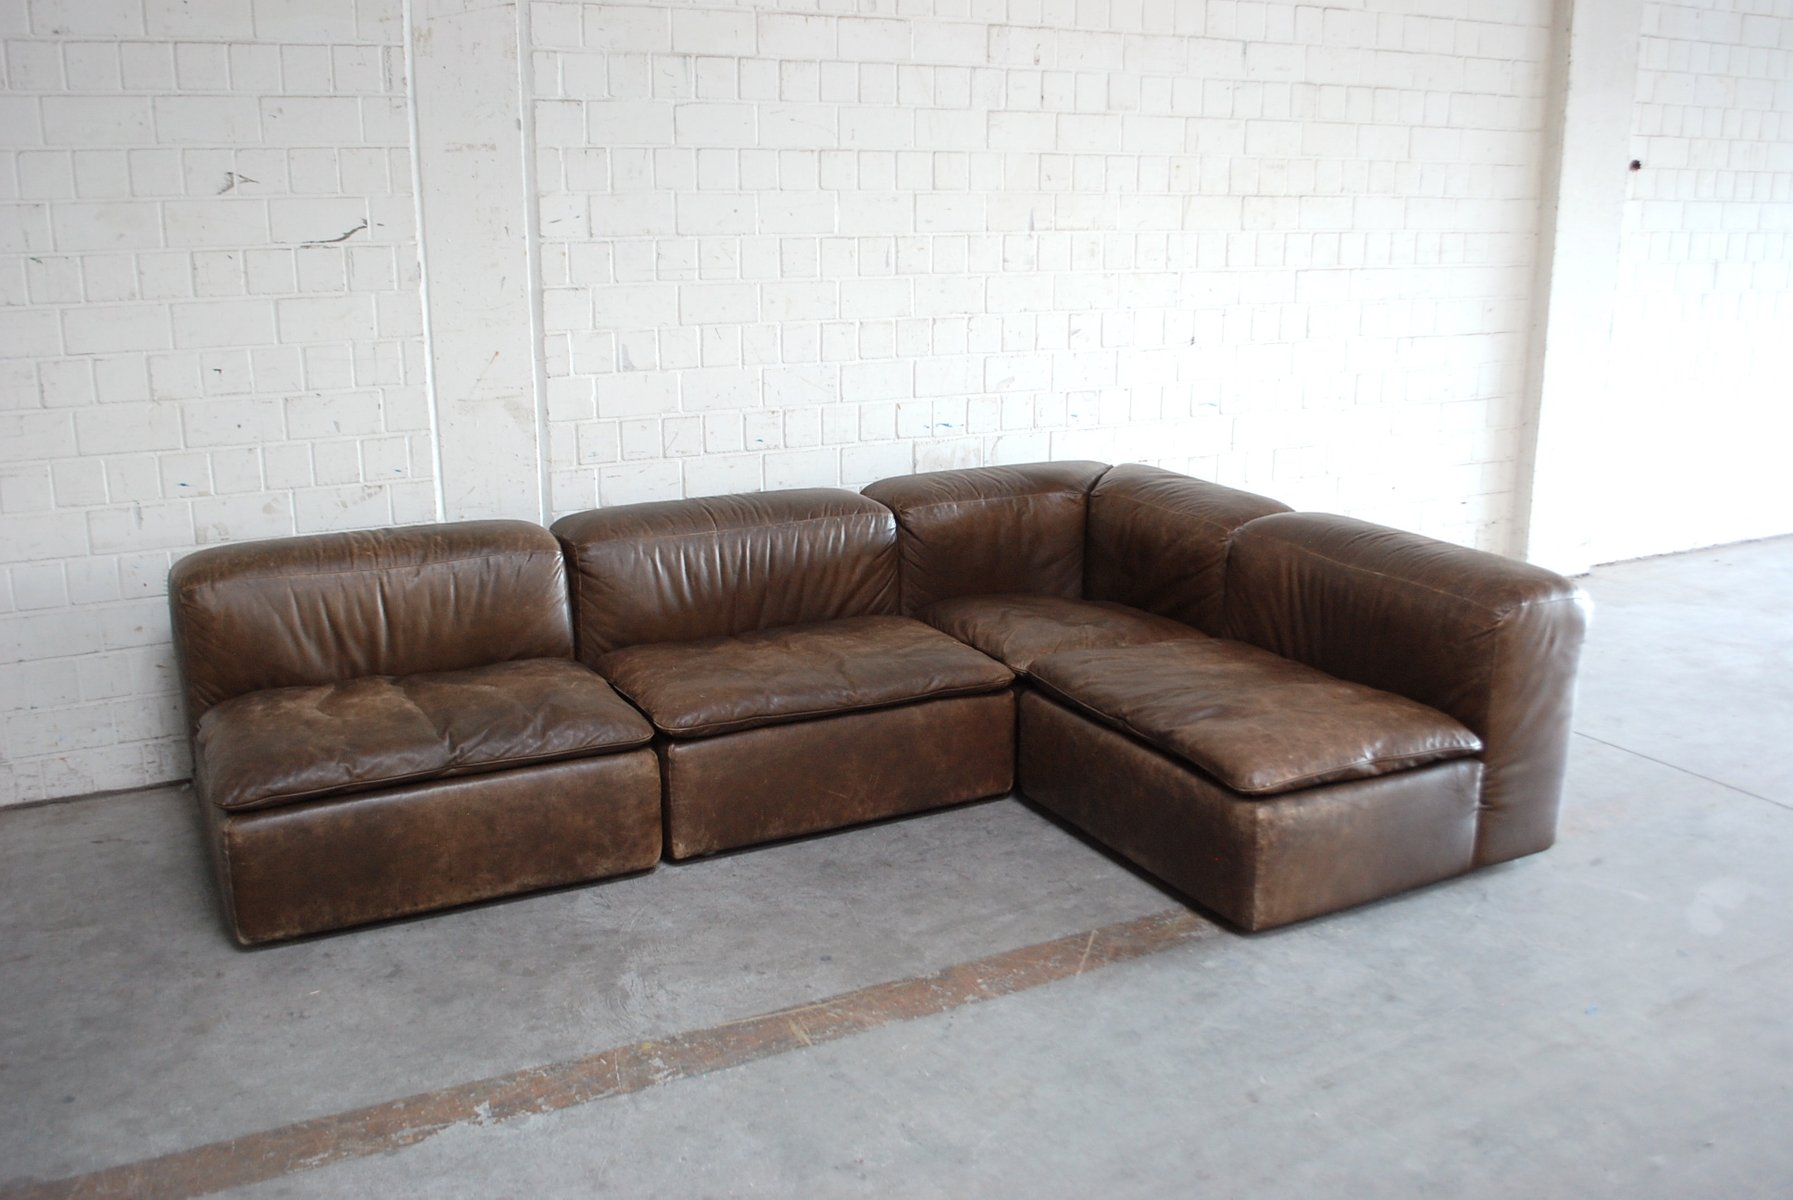 Vintage Modular WK 550 Leather Sofa Set by Ernst Martin Dettinger for WK Möbel Set of 4 for